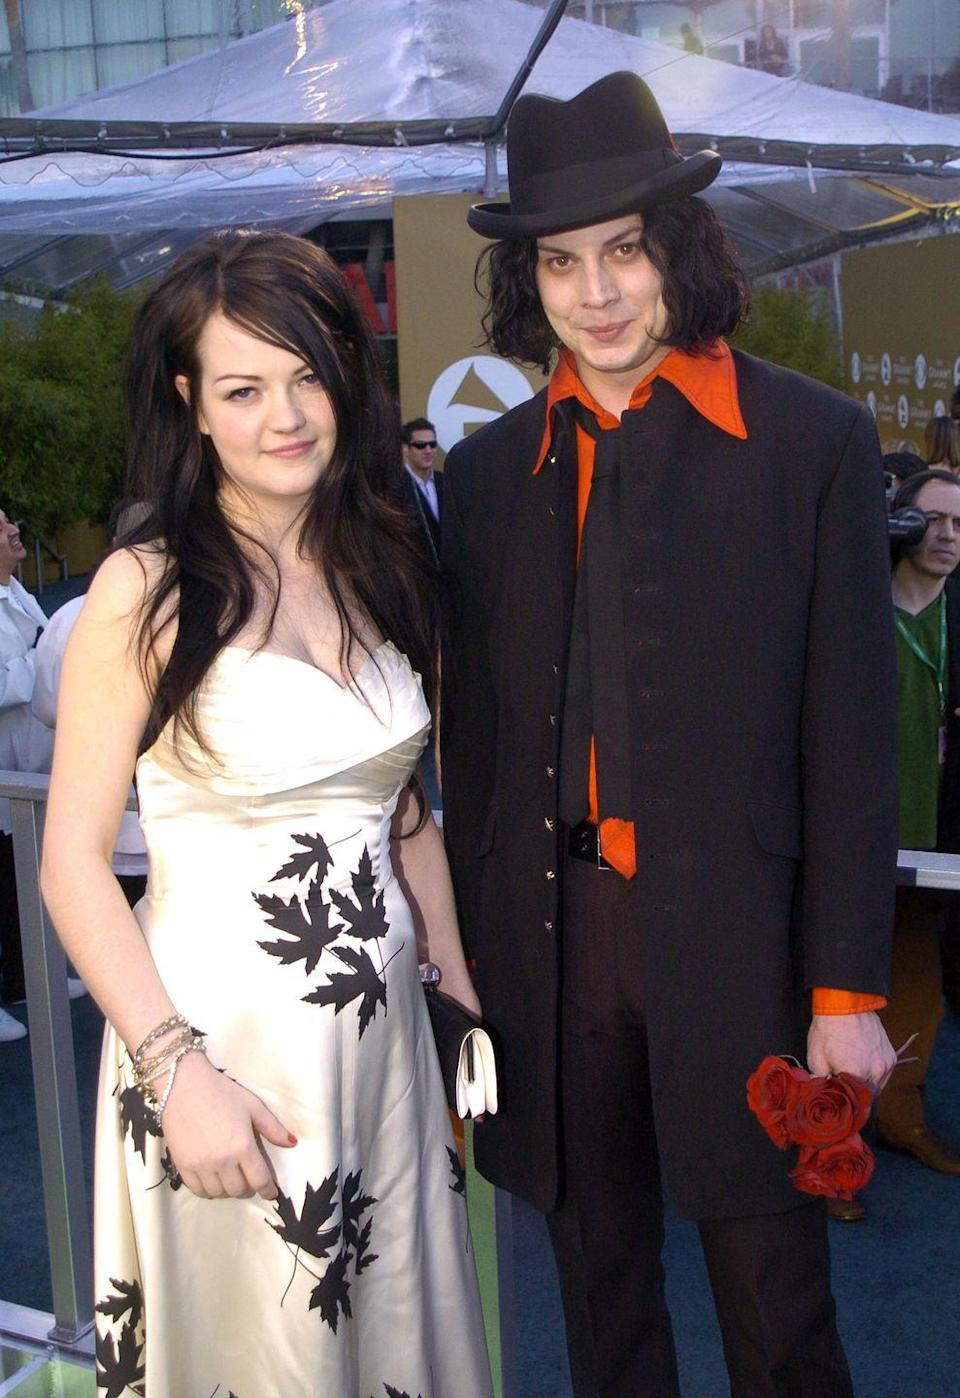 <p>The White Stripes band members prefer to keep their personal lives separate from their music—even when they got divorced in 2000. However, the band continued strong for 10 years after their romantic separation. </p>